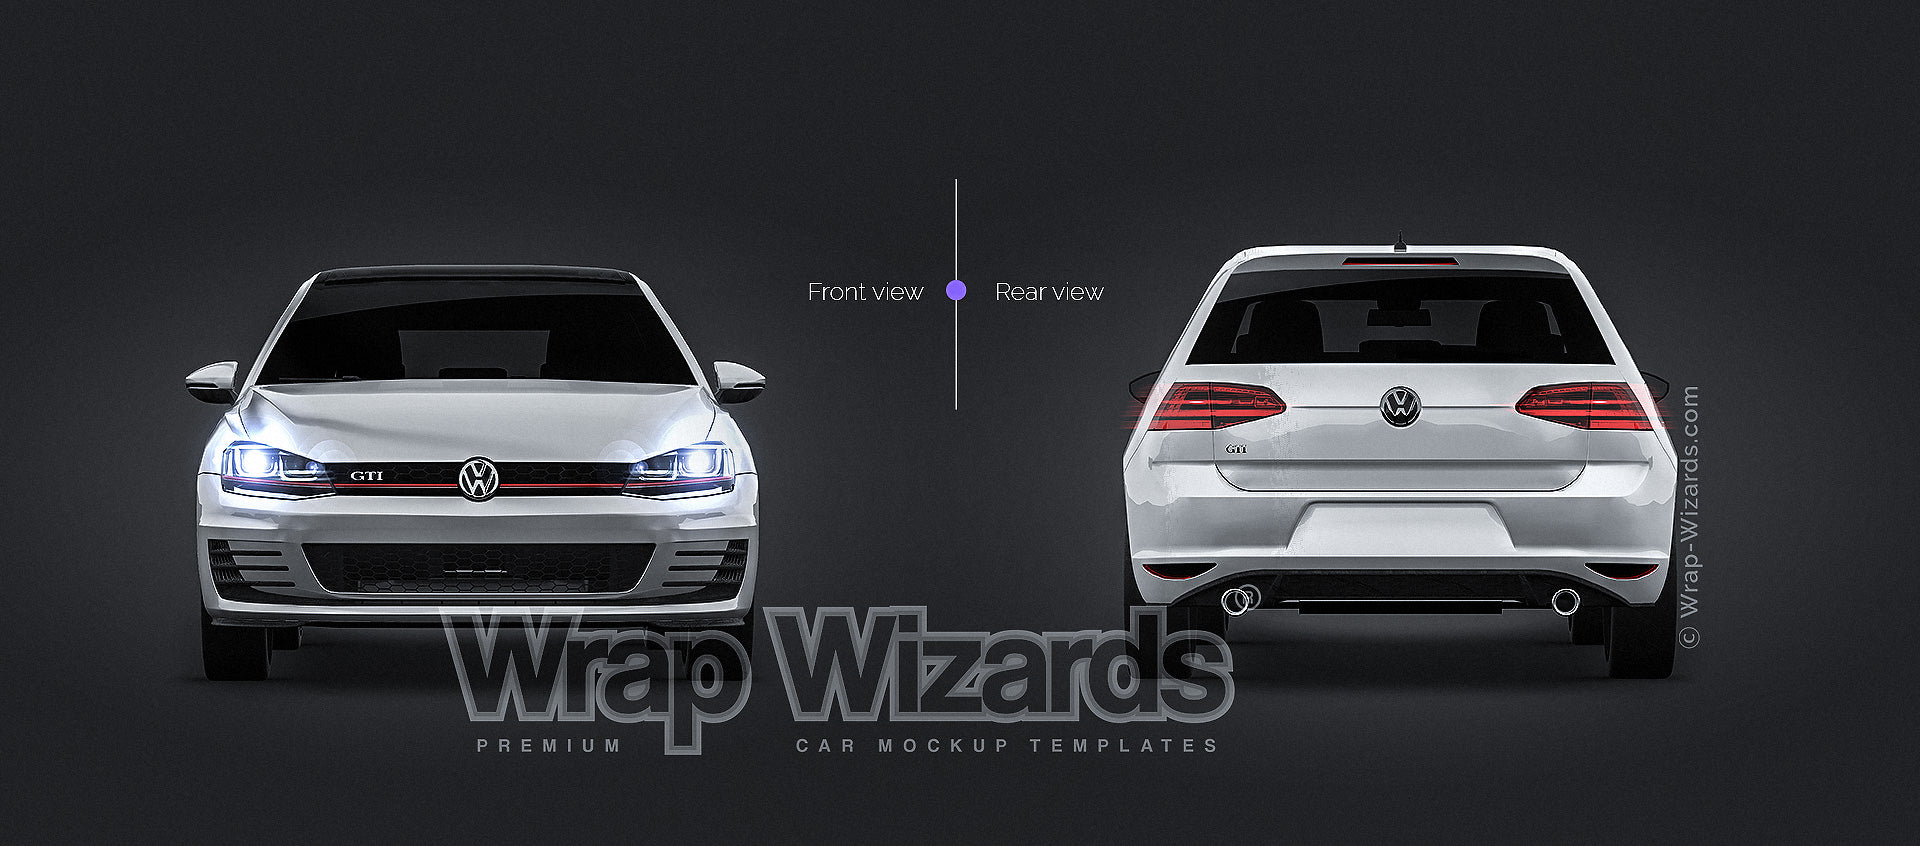 Volkswagen Golf Mk7 Gti All Sides Mockup Template Psd Wrap Wizards Com Premium Car Mockups Templates